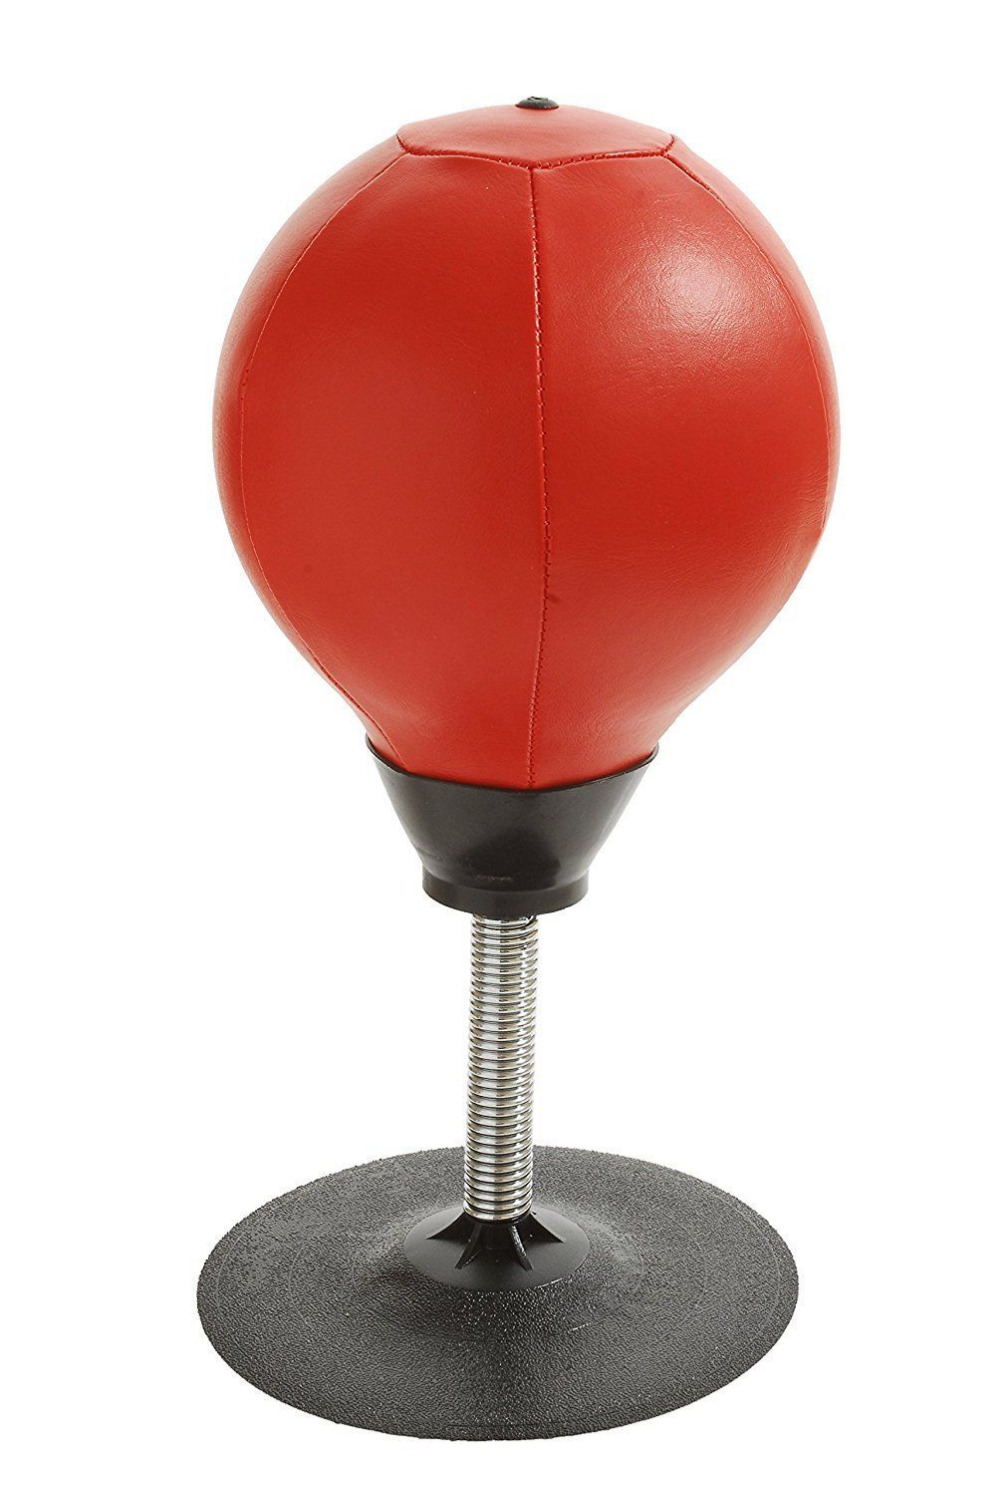 Dropshipping New Desktop Punching Speed Ball Heavy Duty Suction Pressure Relieve Stress Boxing Bag Anti-snxiety Toys 5